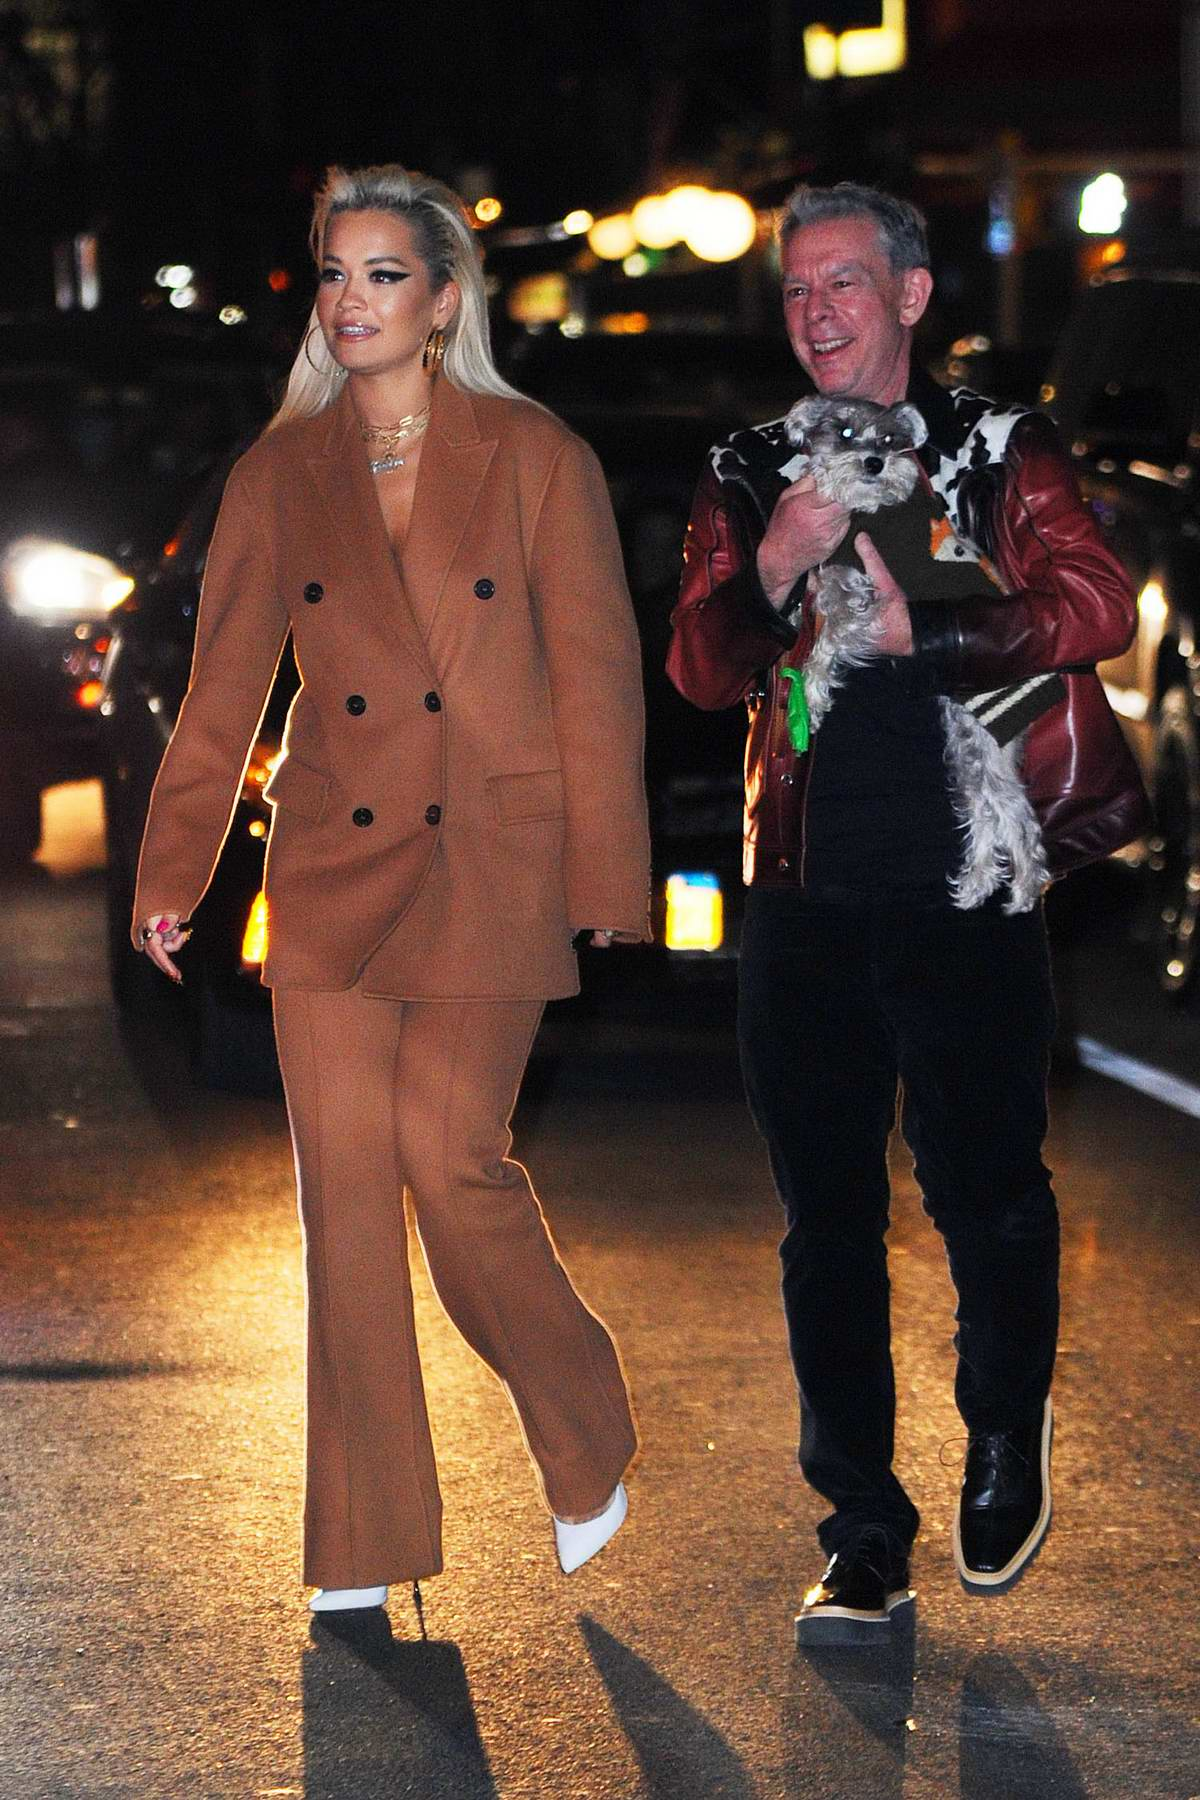 Rita Ora spotted in a brown suit while out for dinner with Elvis Duran in New York City